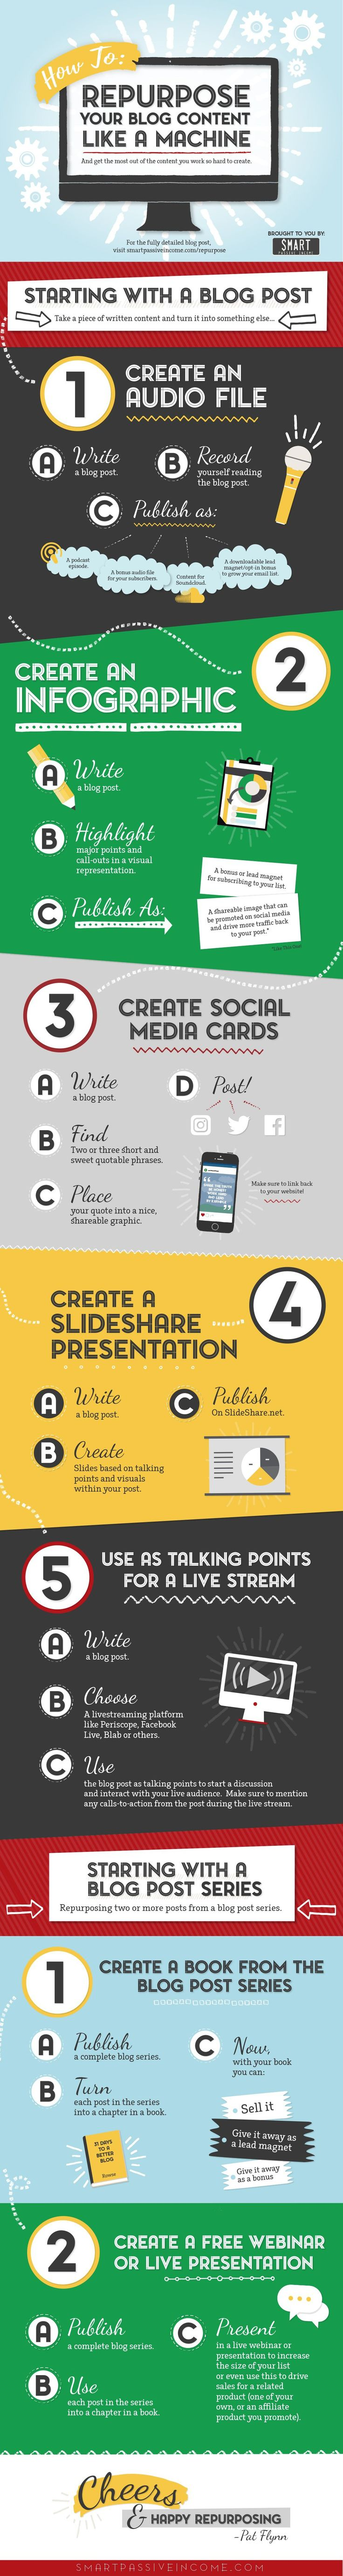 How to Reuse Existing Blog Posts to Create New Content #Infographic